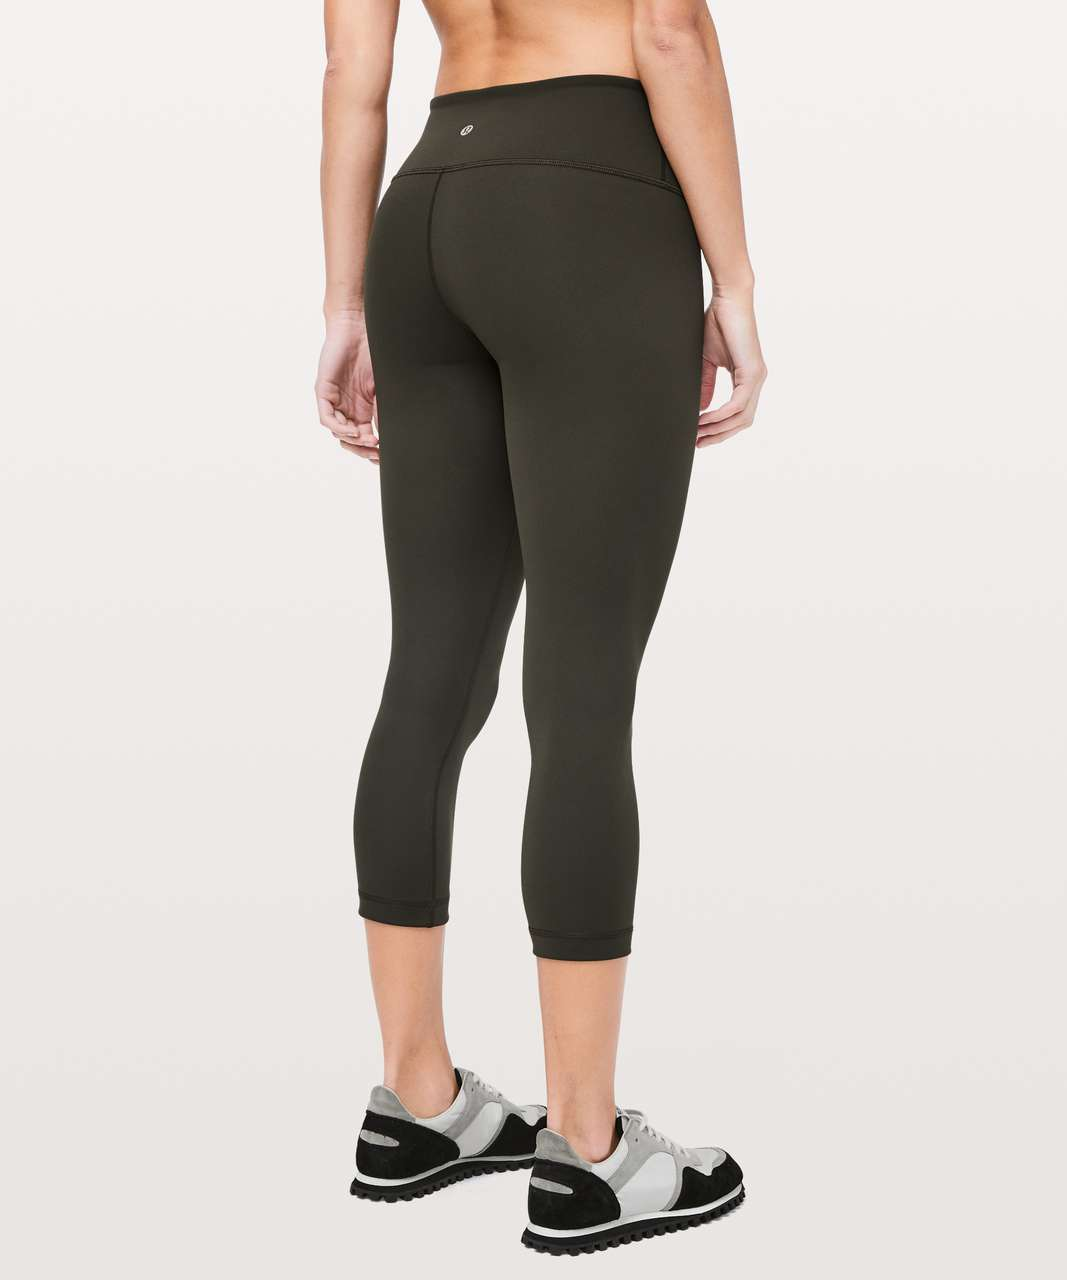 "Lululemon Wunder Under Crop III Full-On Luxtreme 21"" - Dark Olive"